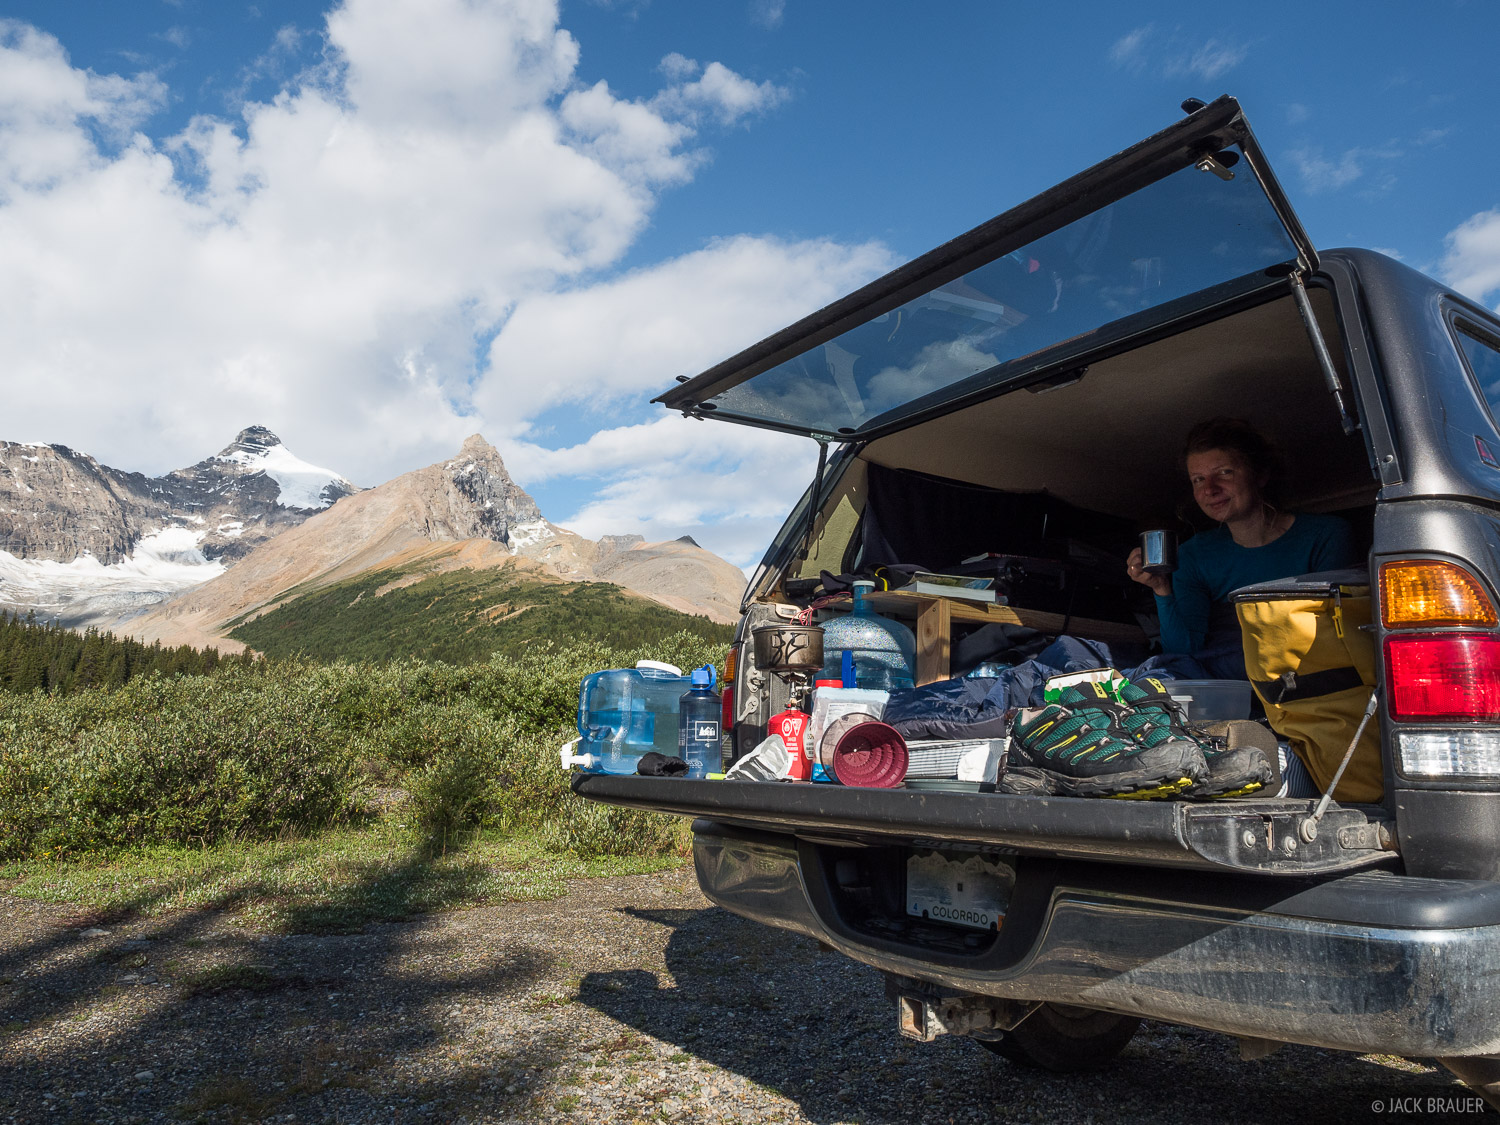 Camping in the truck up at Sunwapta Pass, right on the border between Banff and Jasper National Parks. Mount Athabasca is behind...